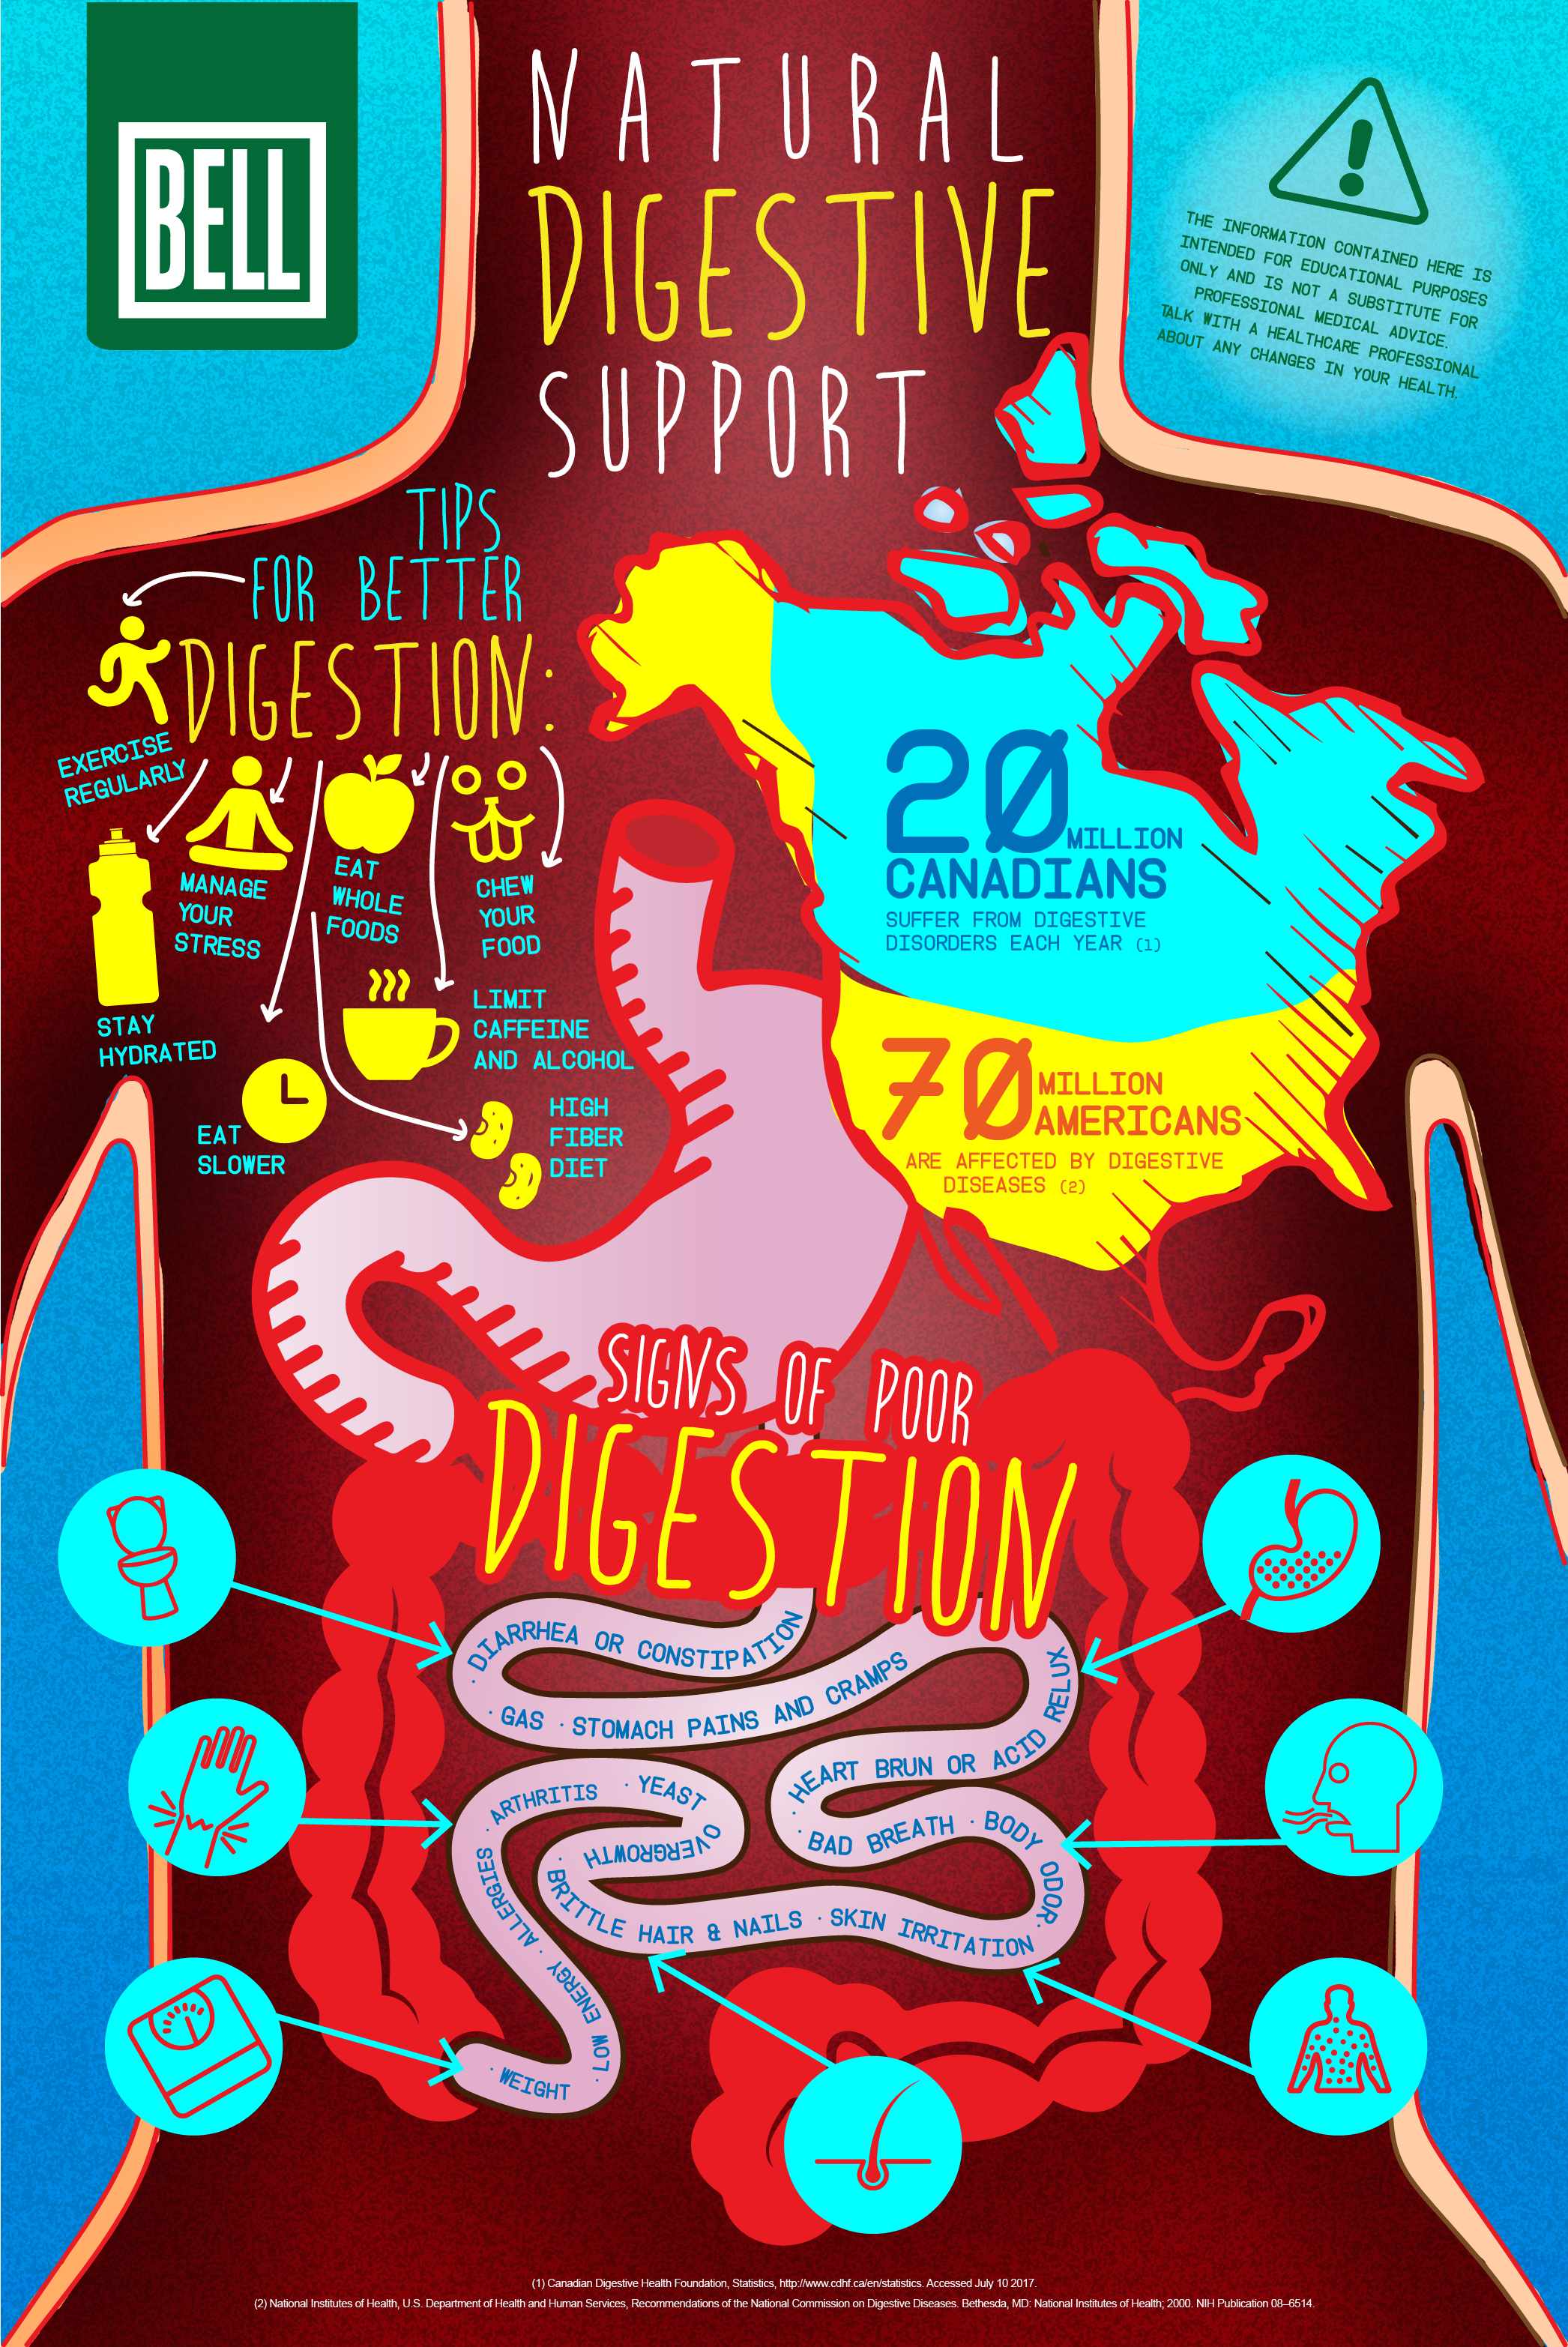 natural digestive health infographic